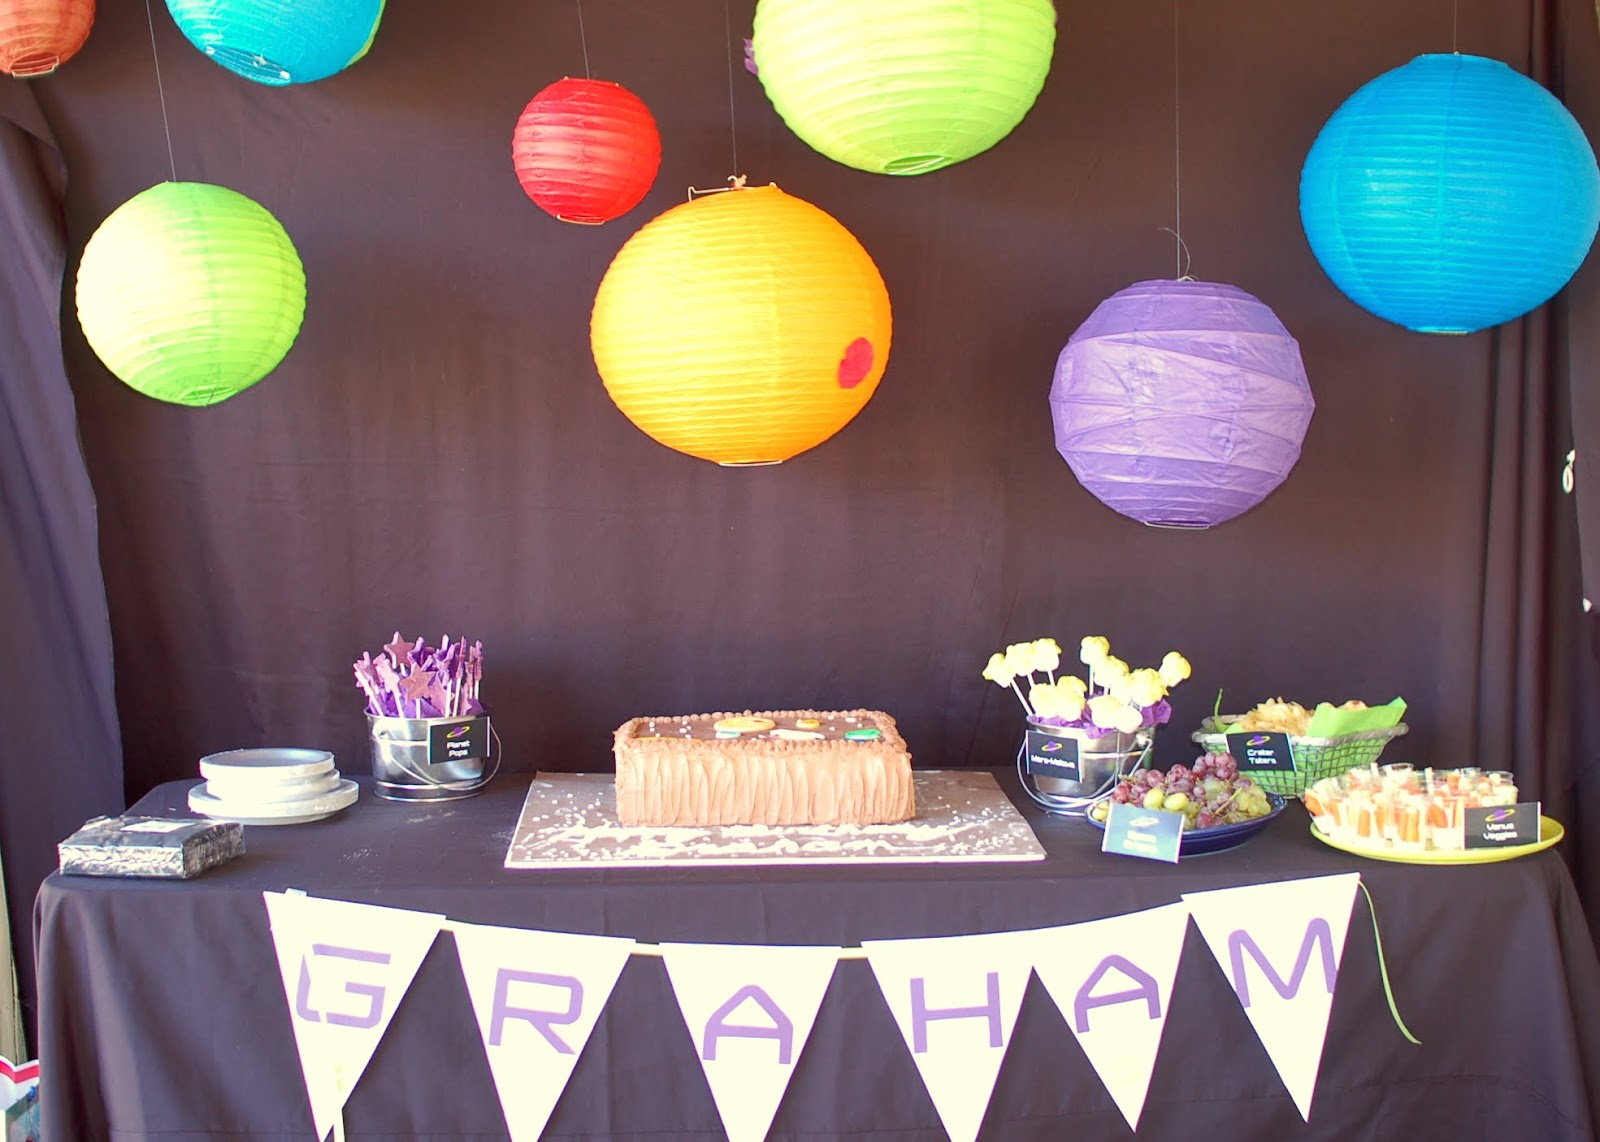 solar system party decorations - photo #5